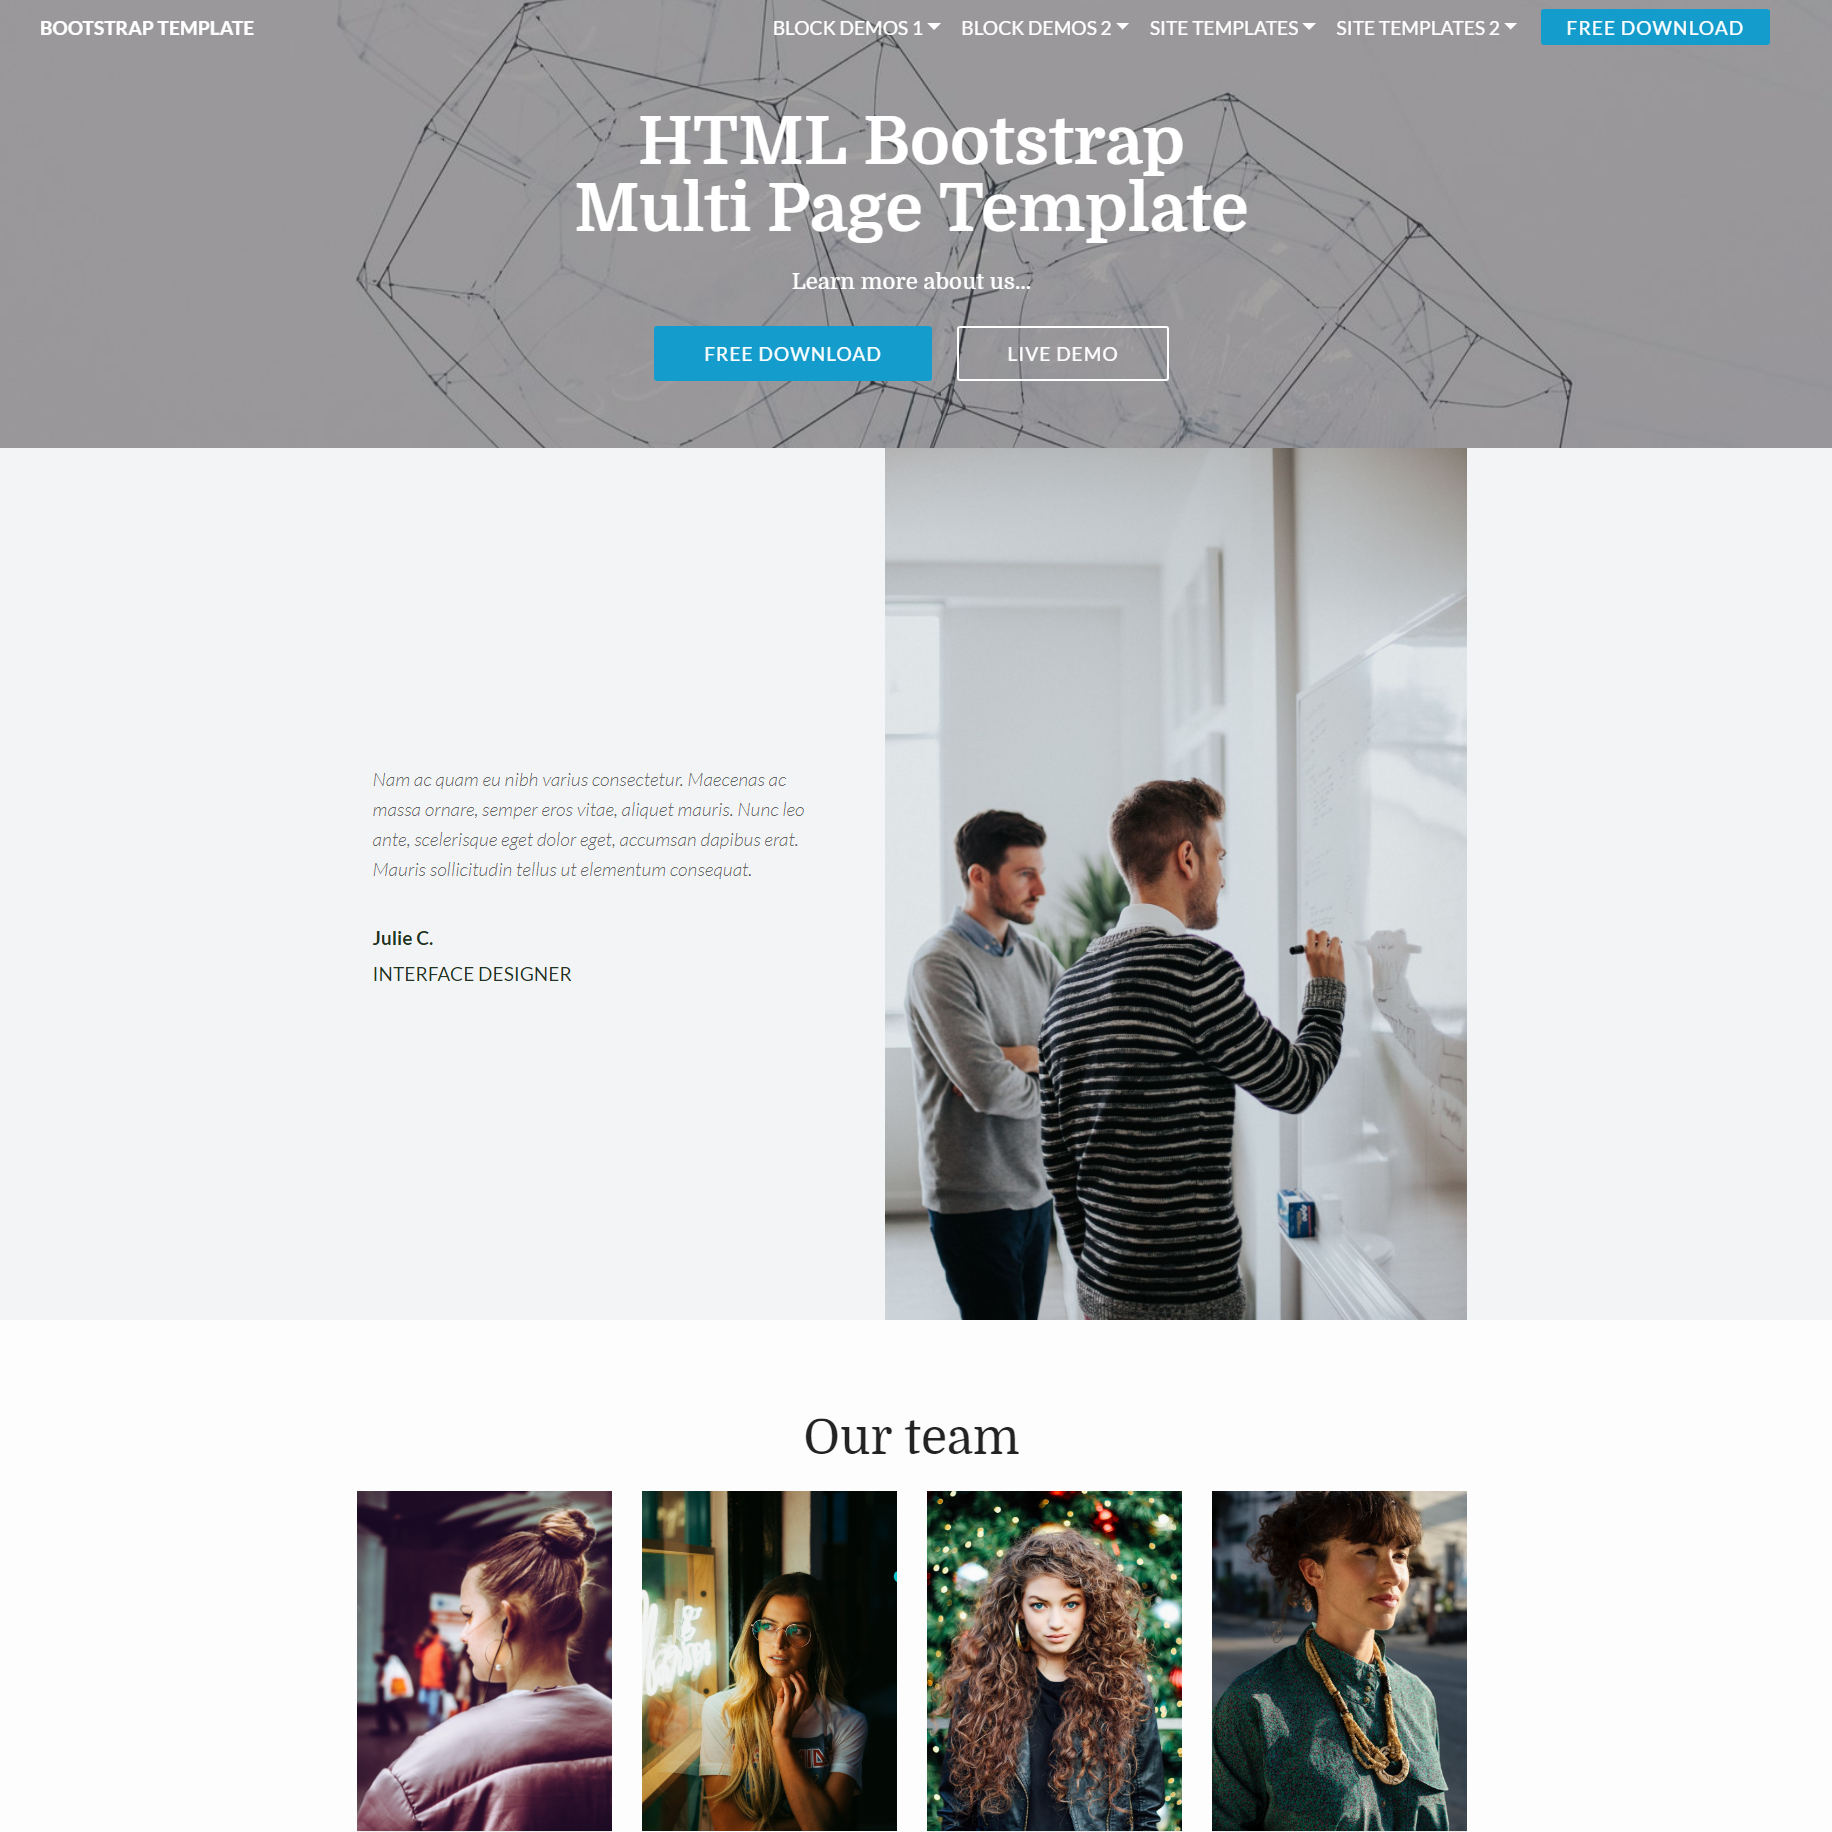 Responsive Bootstrap Multi page Templates